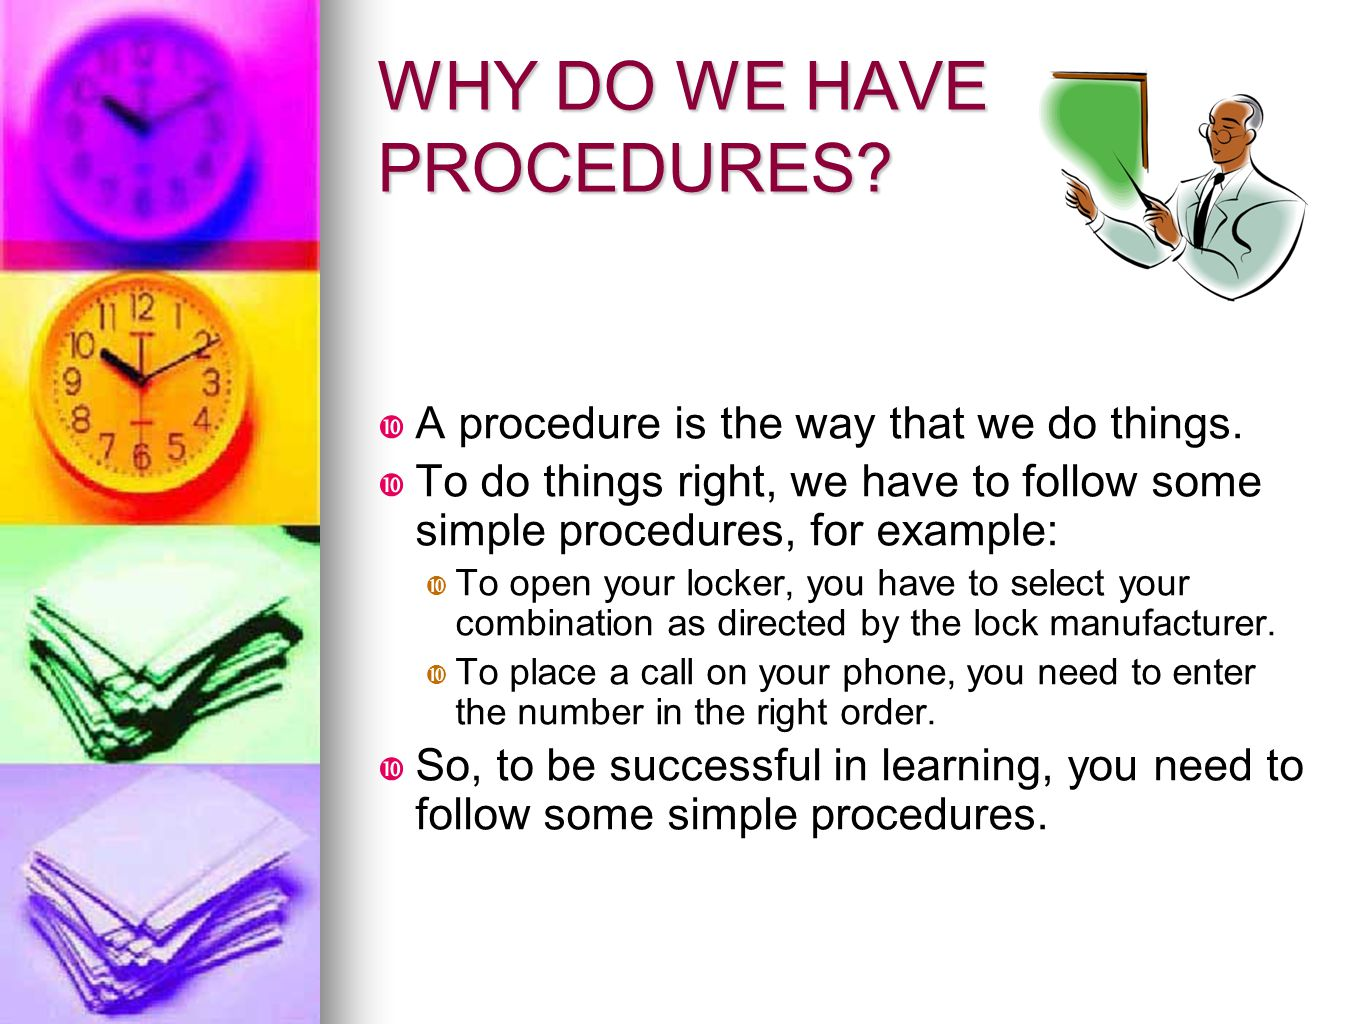 WHY DO WE HAVE PROCEDURES